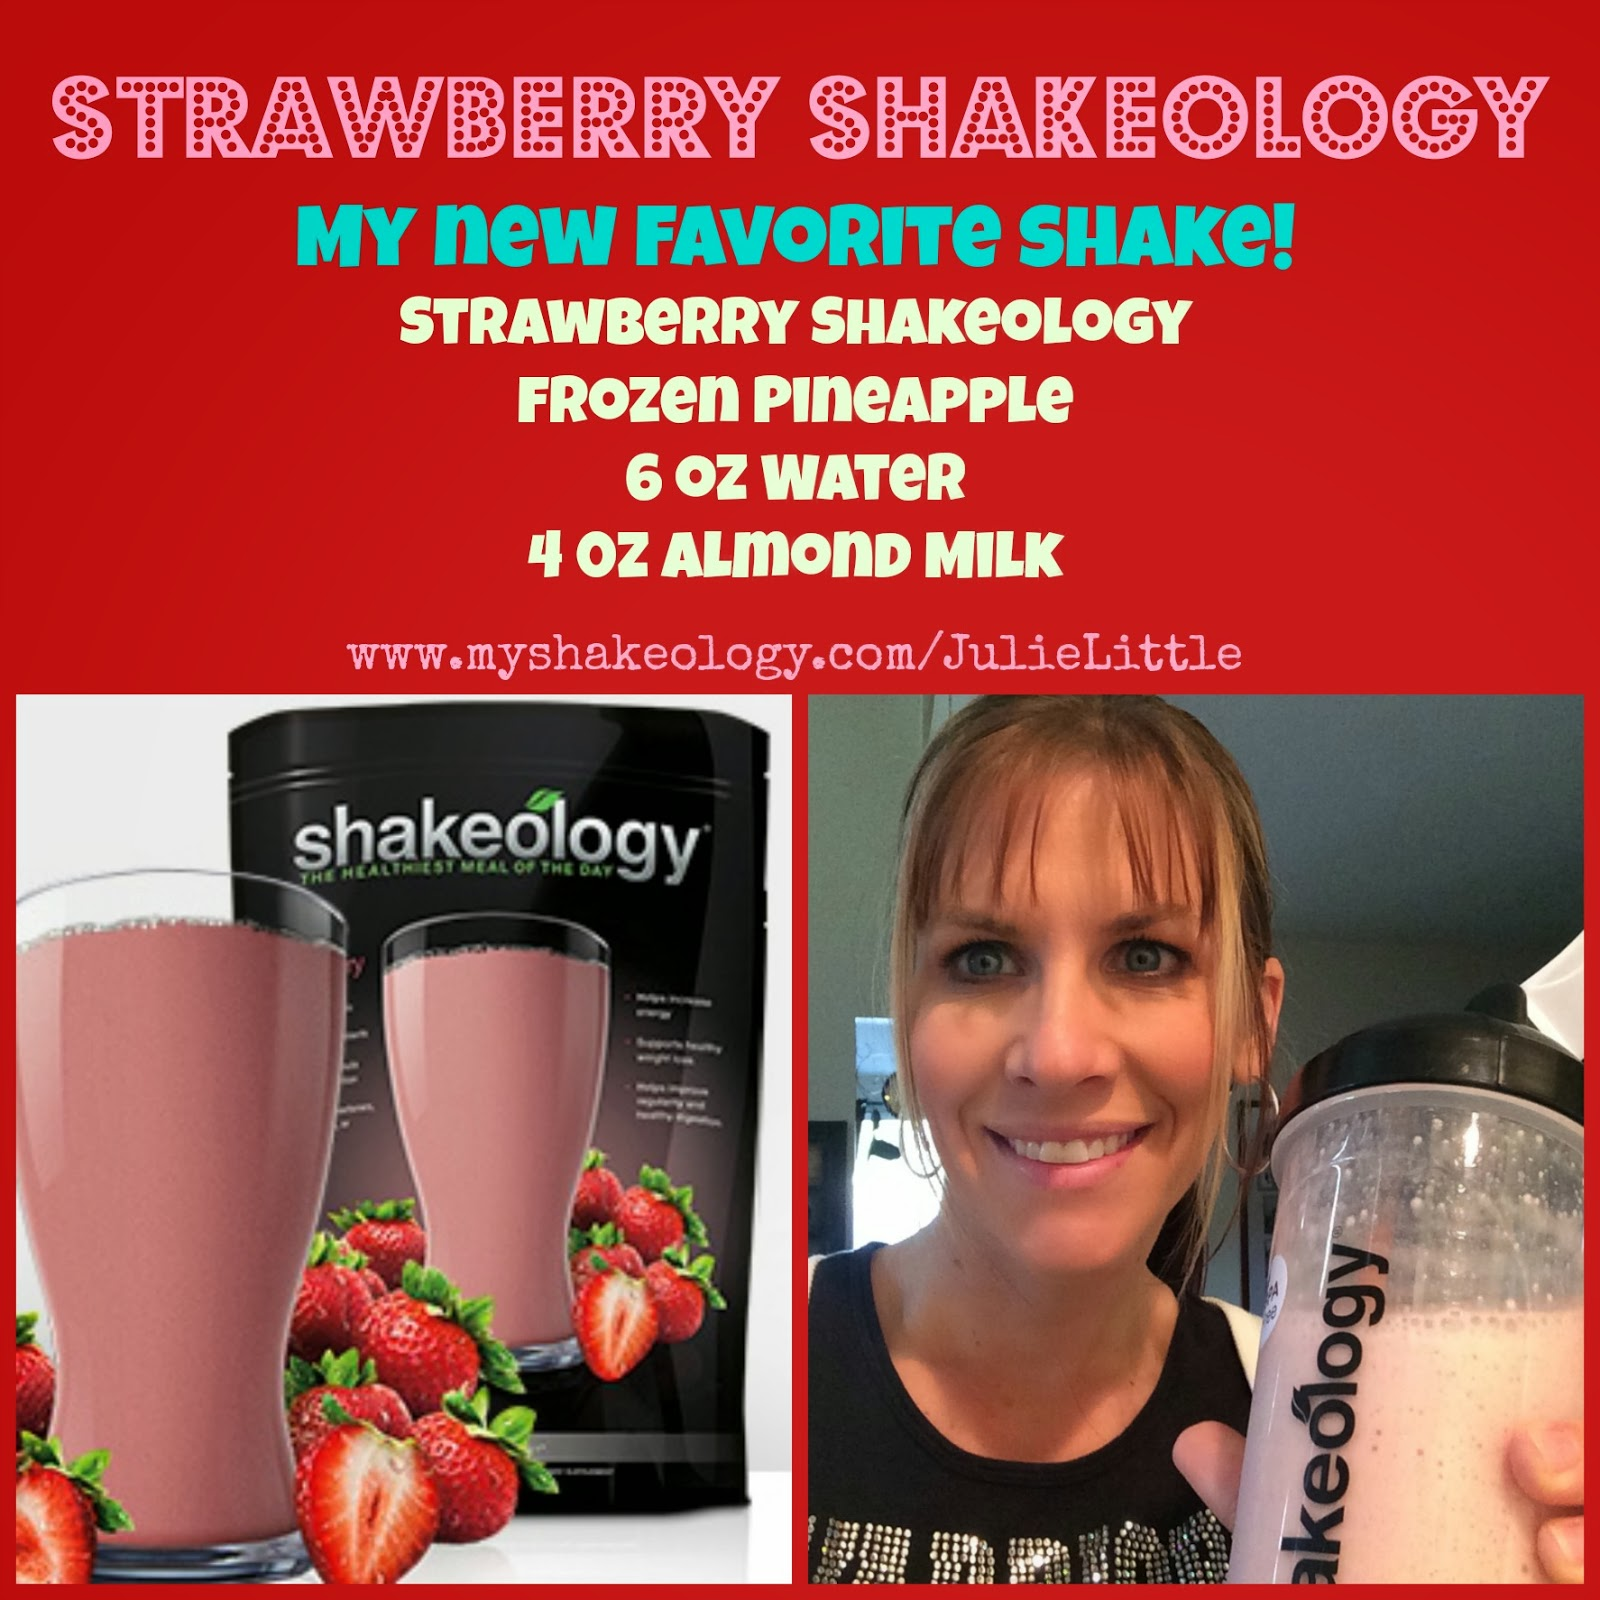 Strawberry Shakeology